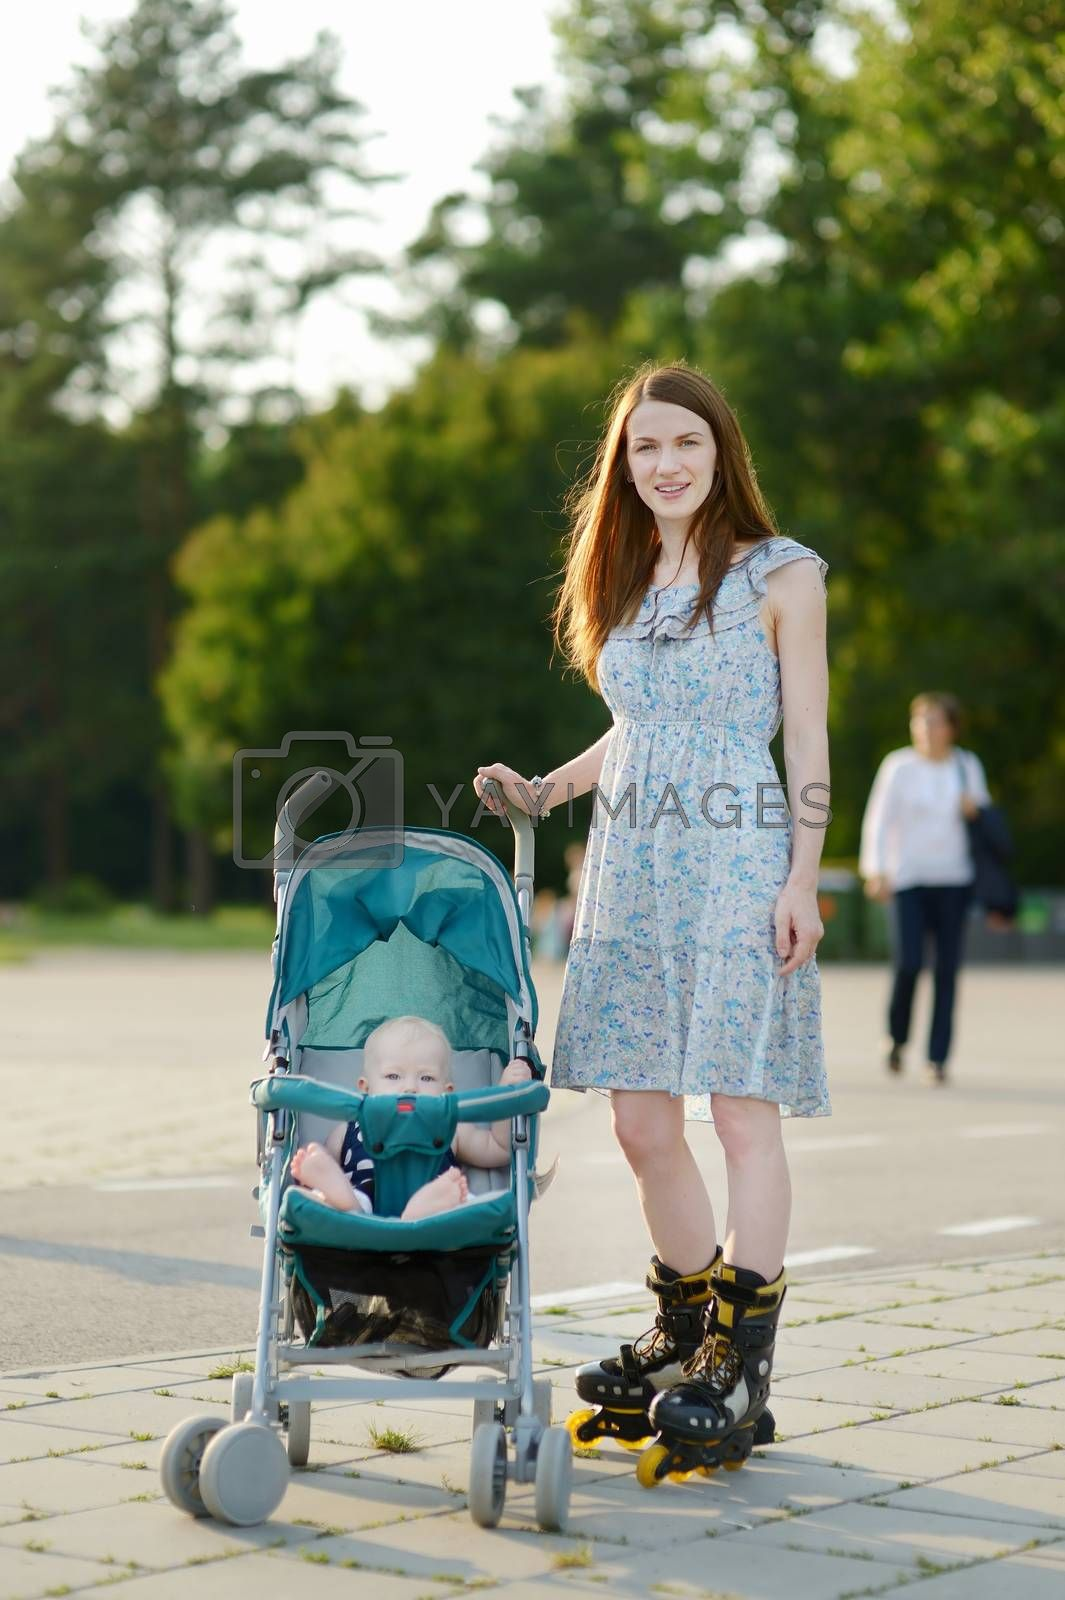 Young mother on roller skates with baby stroller